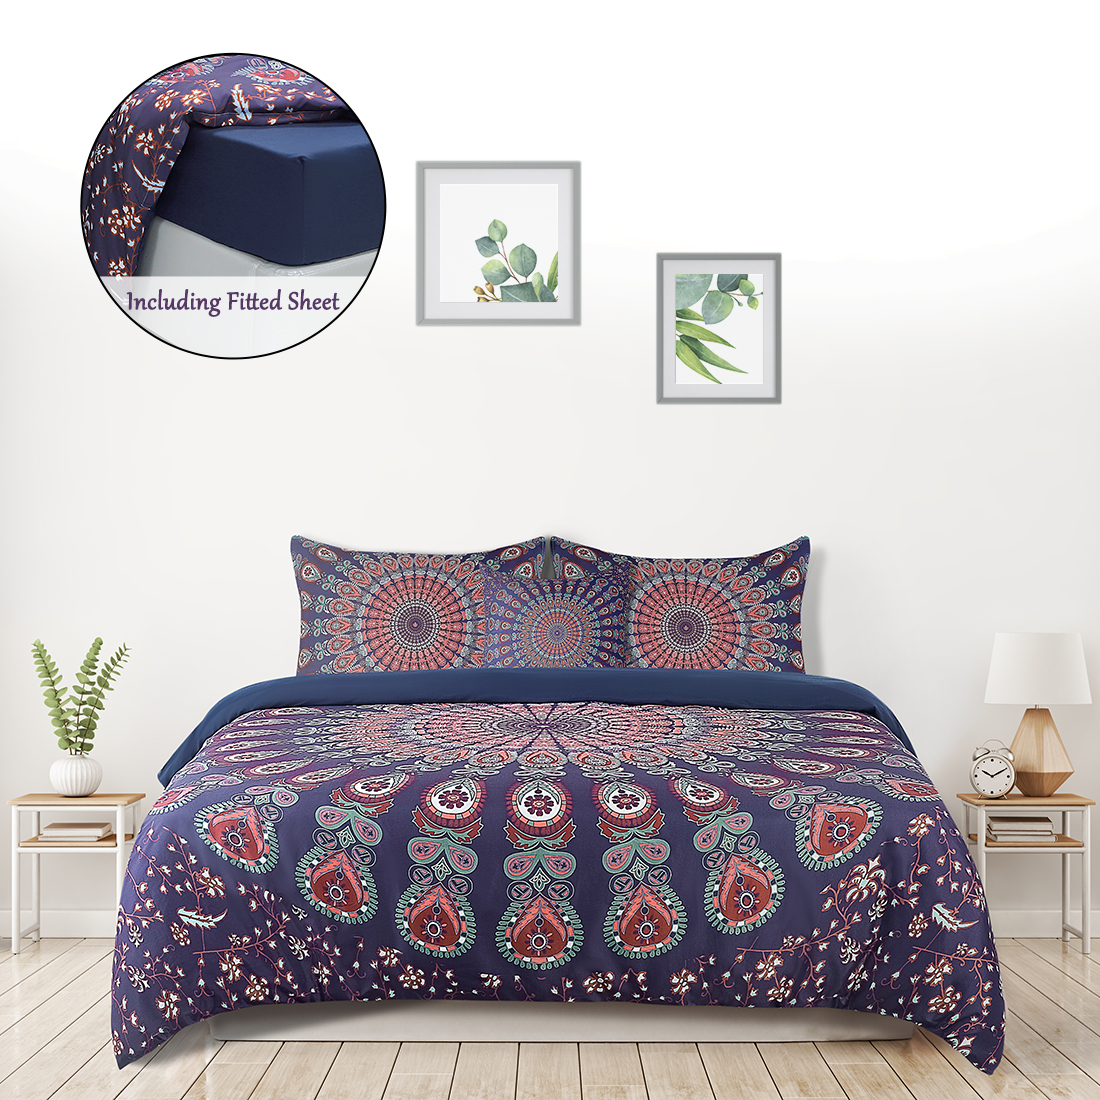 5pcs Duvet Cover Set Bohemian Bedding Including Comfort Cover Fitted Sheet And Pillowcase Red Queen Walmart Canada